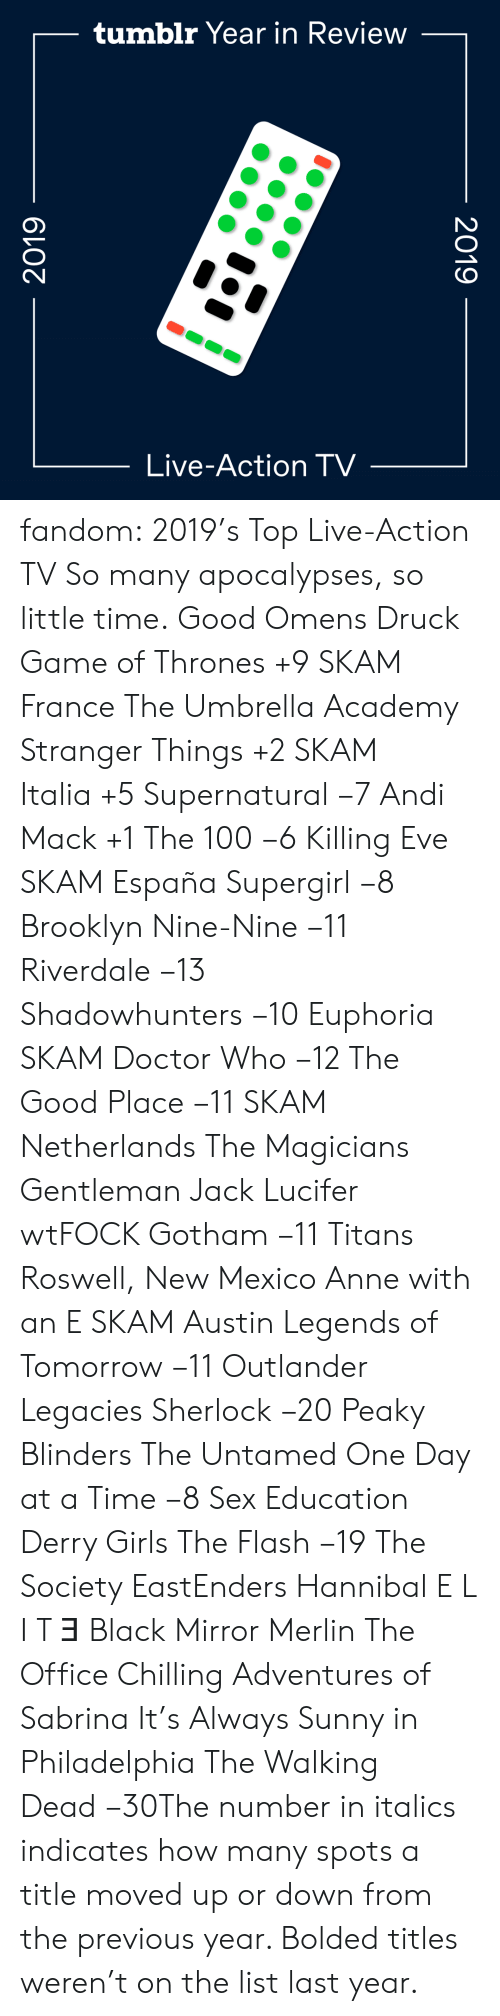 Brooklyn: tumblr Year in Review  Live-Action TV-  2019  2019 fandom:  2019's Top Live-Action TV  So many apocalypses, so little time.  Good Omens  Druck  Game of Thrones +9  SKAM France  The Umbrella Academy  Stranger Things +2  SKAM Italia +5  Supernatural −7  Andi Mack +1  The 100 −6  Killing Eve   SKAM España  Supergirl −8  Brooklyn Nine-Nine −11  Riverdale −13  Shadowhunters −10  Euphoria  SKAM  Doctor Who −12  The Good Place −11  SKAM Netherlands  The Magicians  Gentleman Jack  Lucifer  wtFOCK  Gotham −11  Titans  Roswell, New Mexico  Anne with an E  SKAM Austin  Legends of Tomorrow −11  Outlander  Legacies  Sherlock −20  Peaky Blinders  The Untamed  One Day at a Time −8  Sex Education  Derry Girls  The Flash −19  The Society  EastEnders  Hannibal  E L I T Ǝ  Black Mirror  Merlin  The Office  Chilling Adventures of Sabrina  It's Always Sunny in Philadelphia The Walking Dead −30The number in italics indicates how many spots a title moved up or down from the previous year. Bolded titles weren't on the list last year.